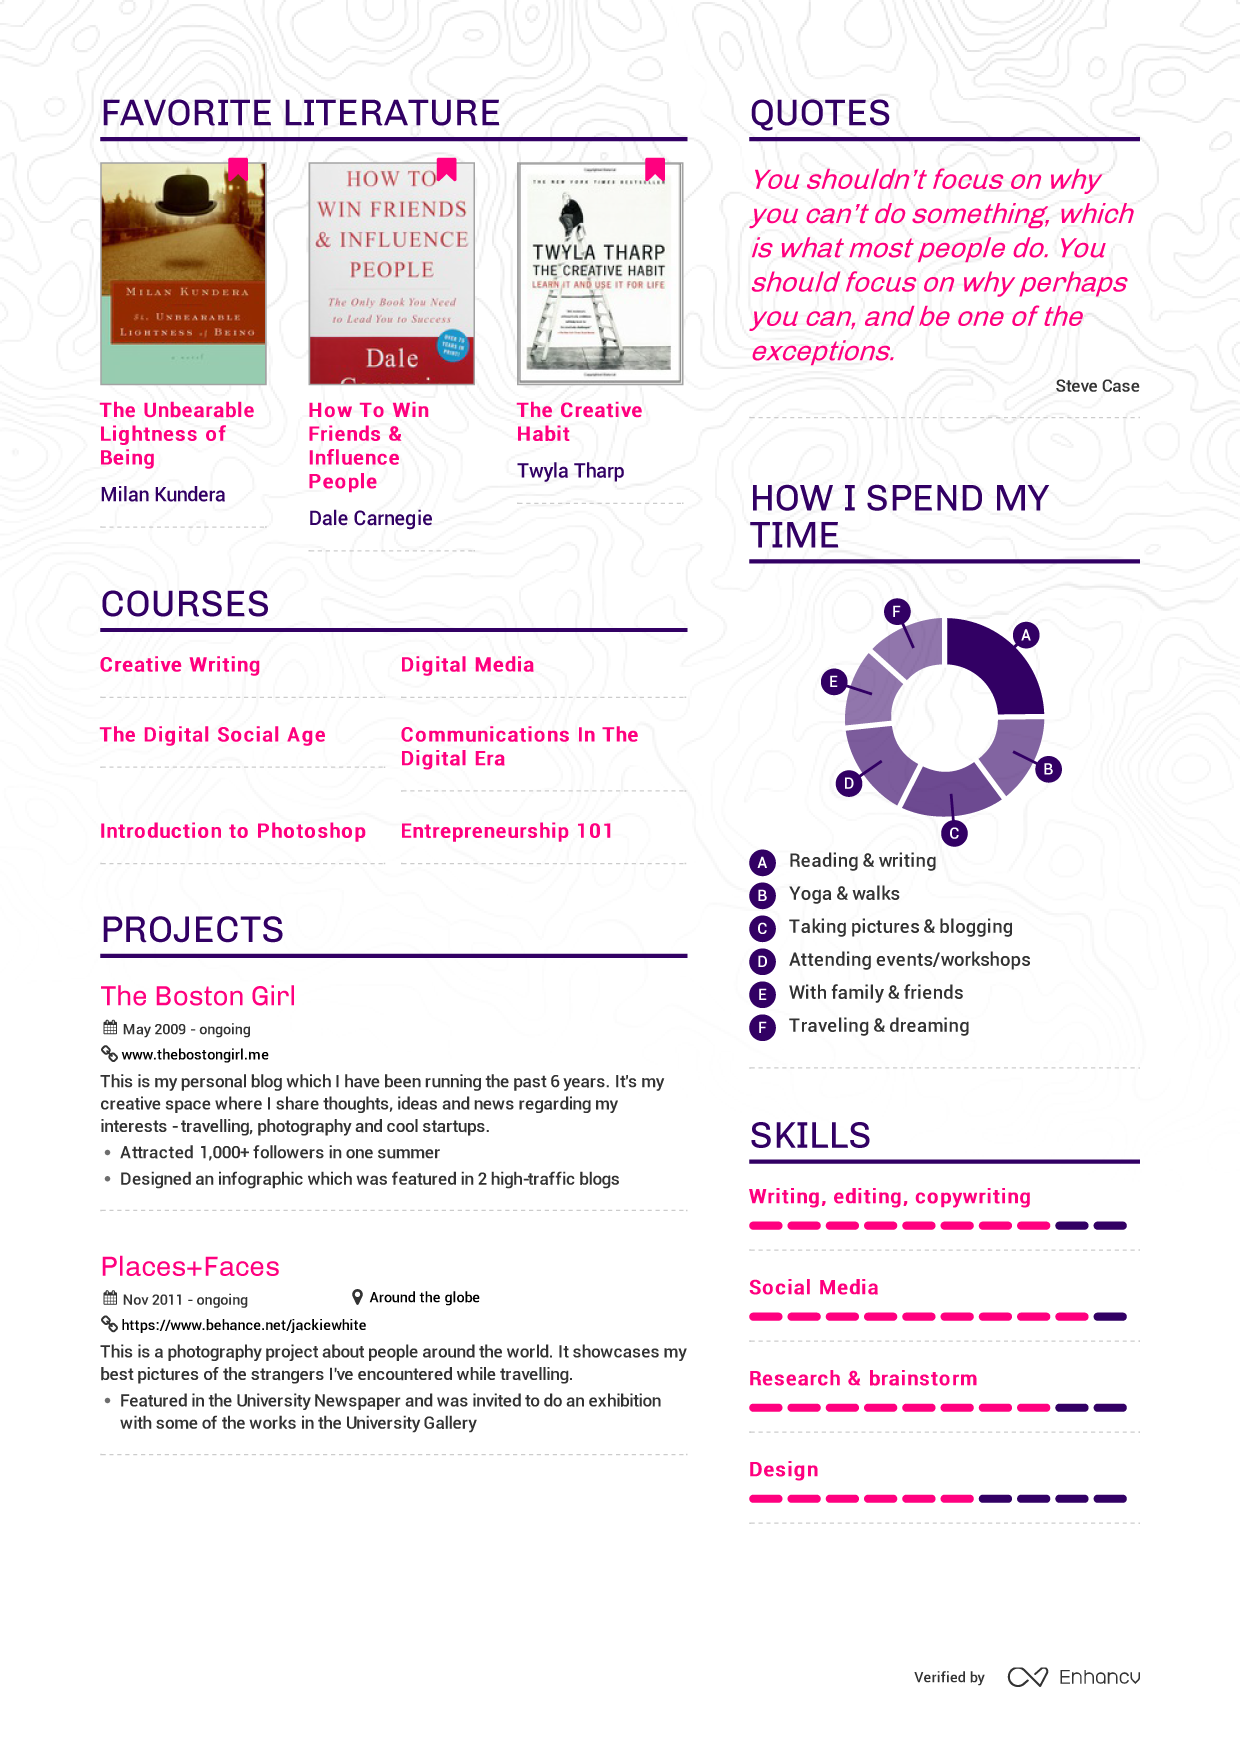 examples of resumes by enhancv jackie white resume page 1 jackie white resume page 2